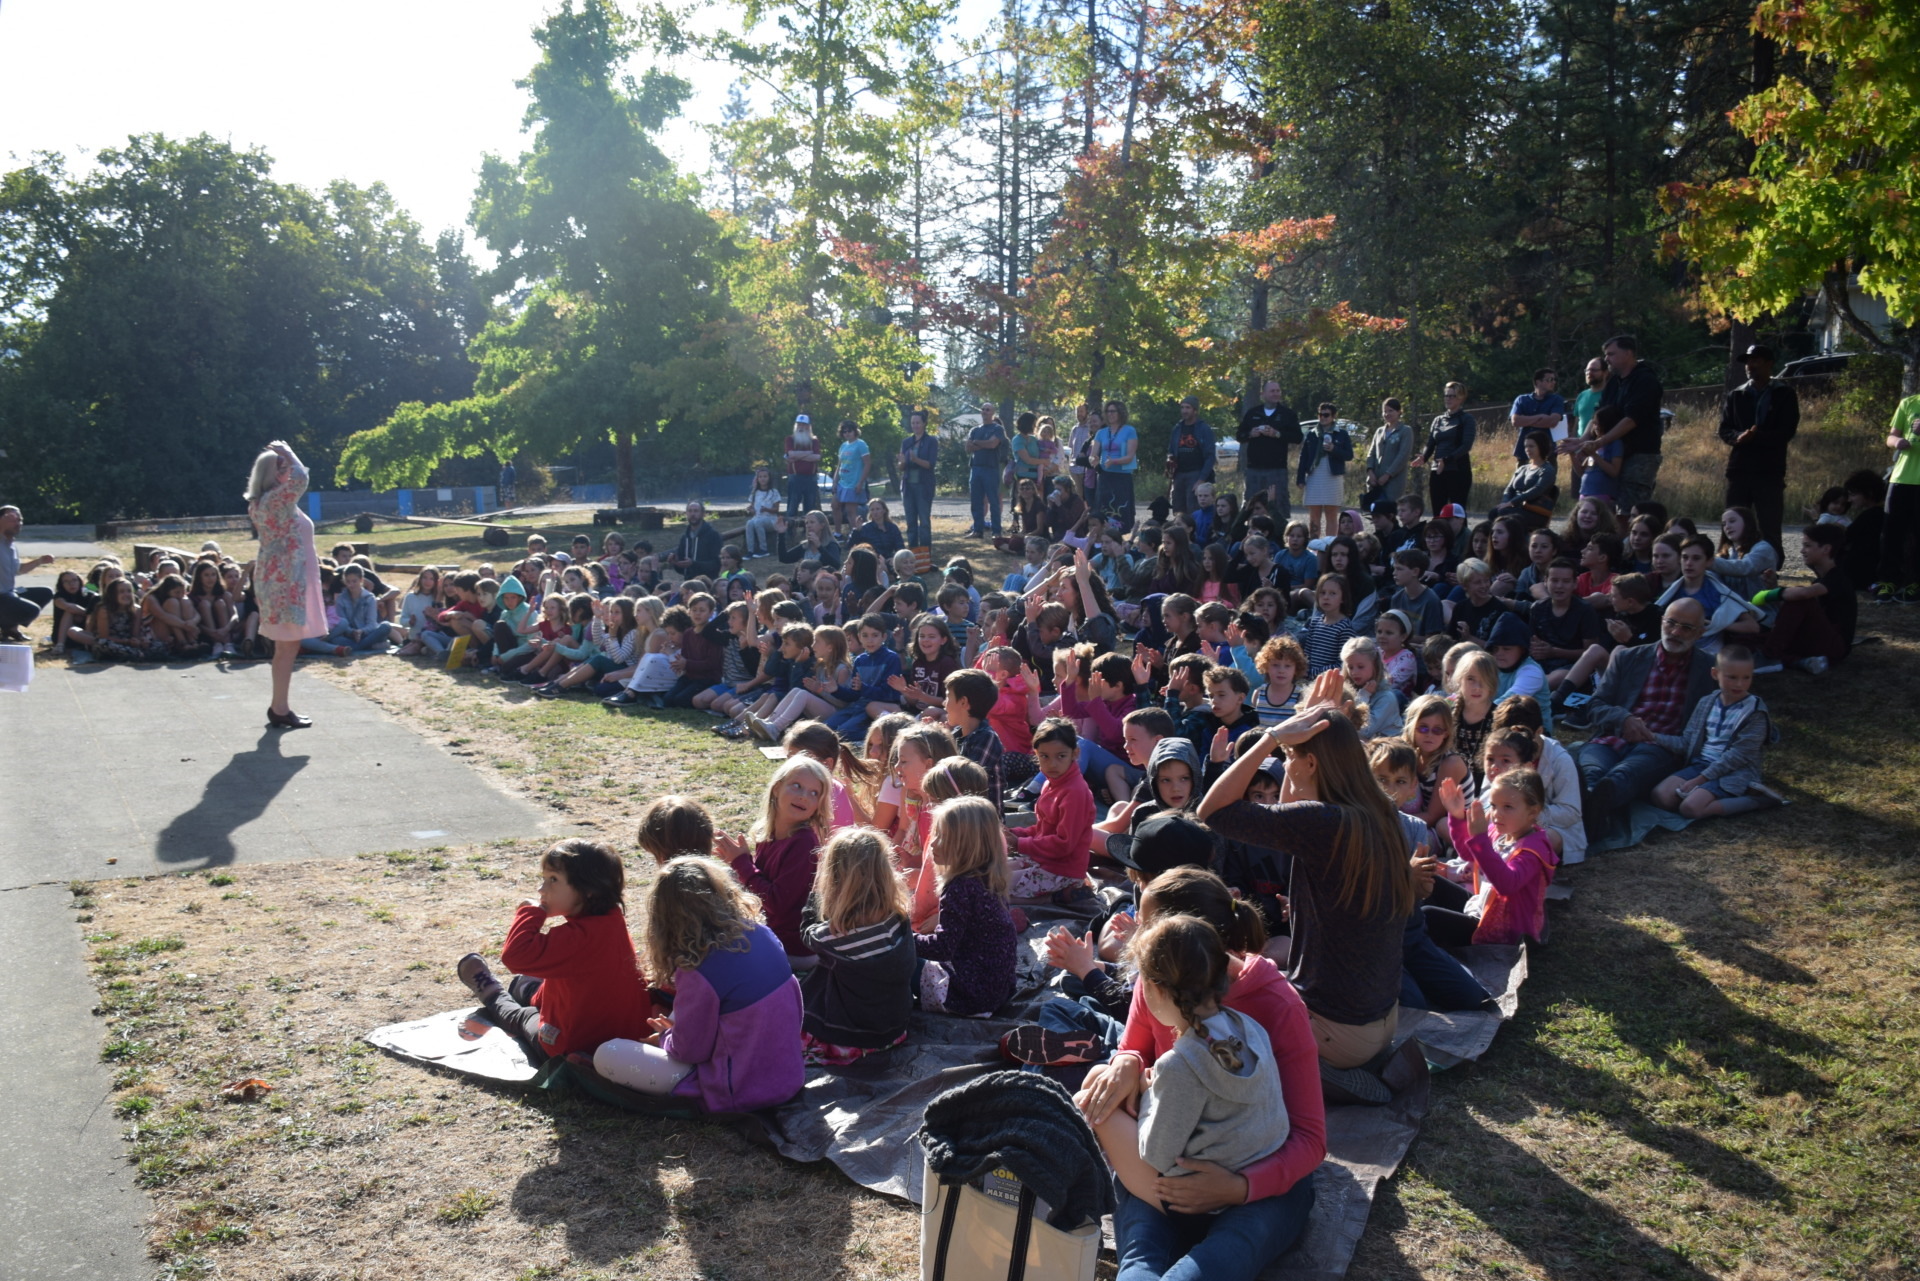 Students gather for the annual Rose Ceremony [click image to see entire picture]